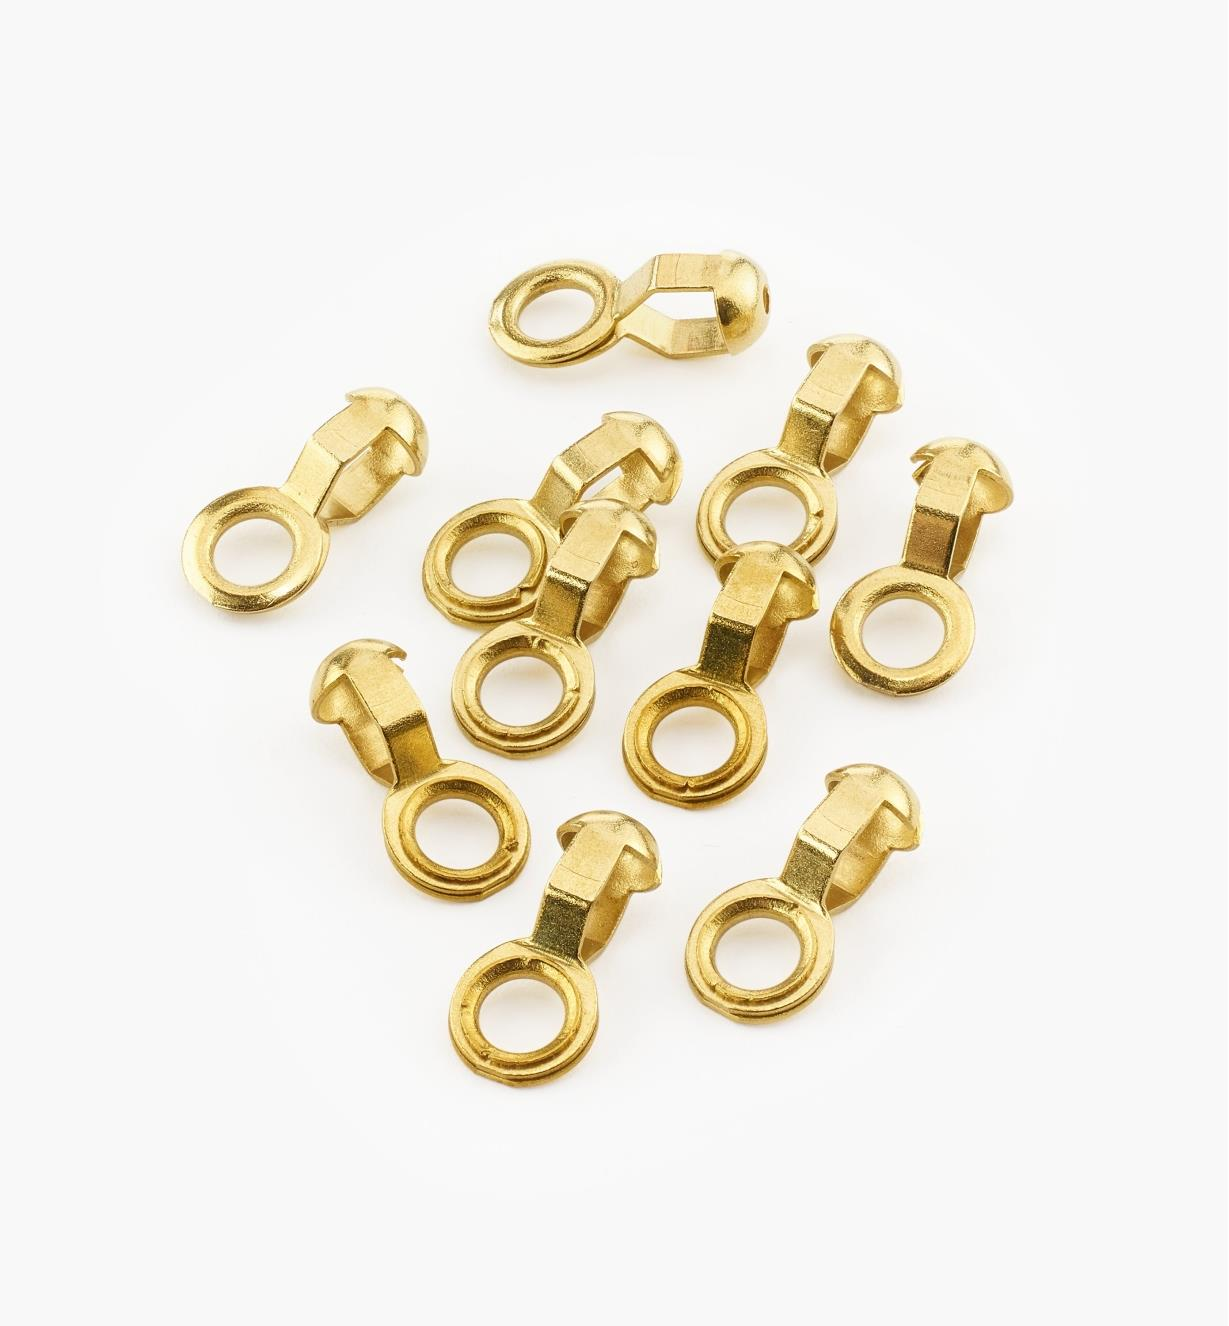 00G4220 - #3 End Rings, pkg. of 10